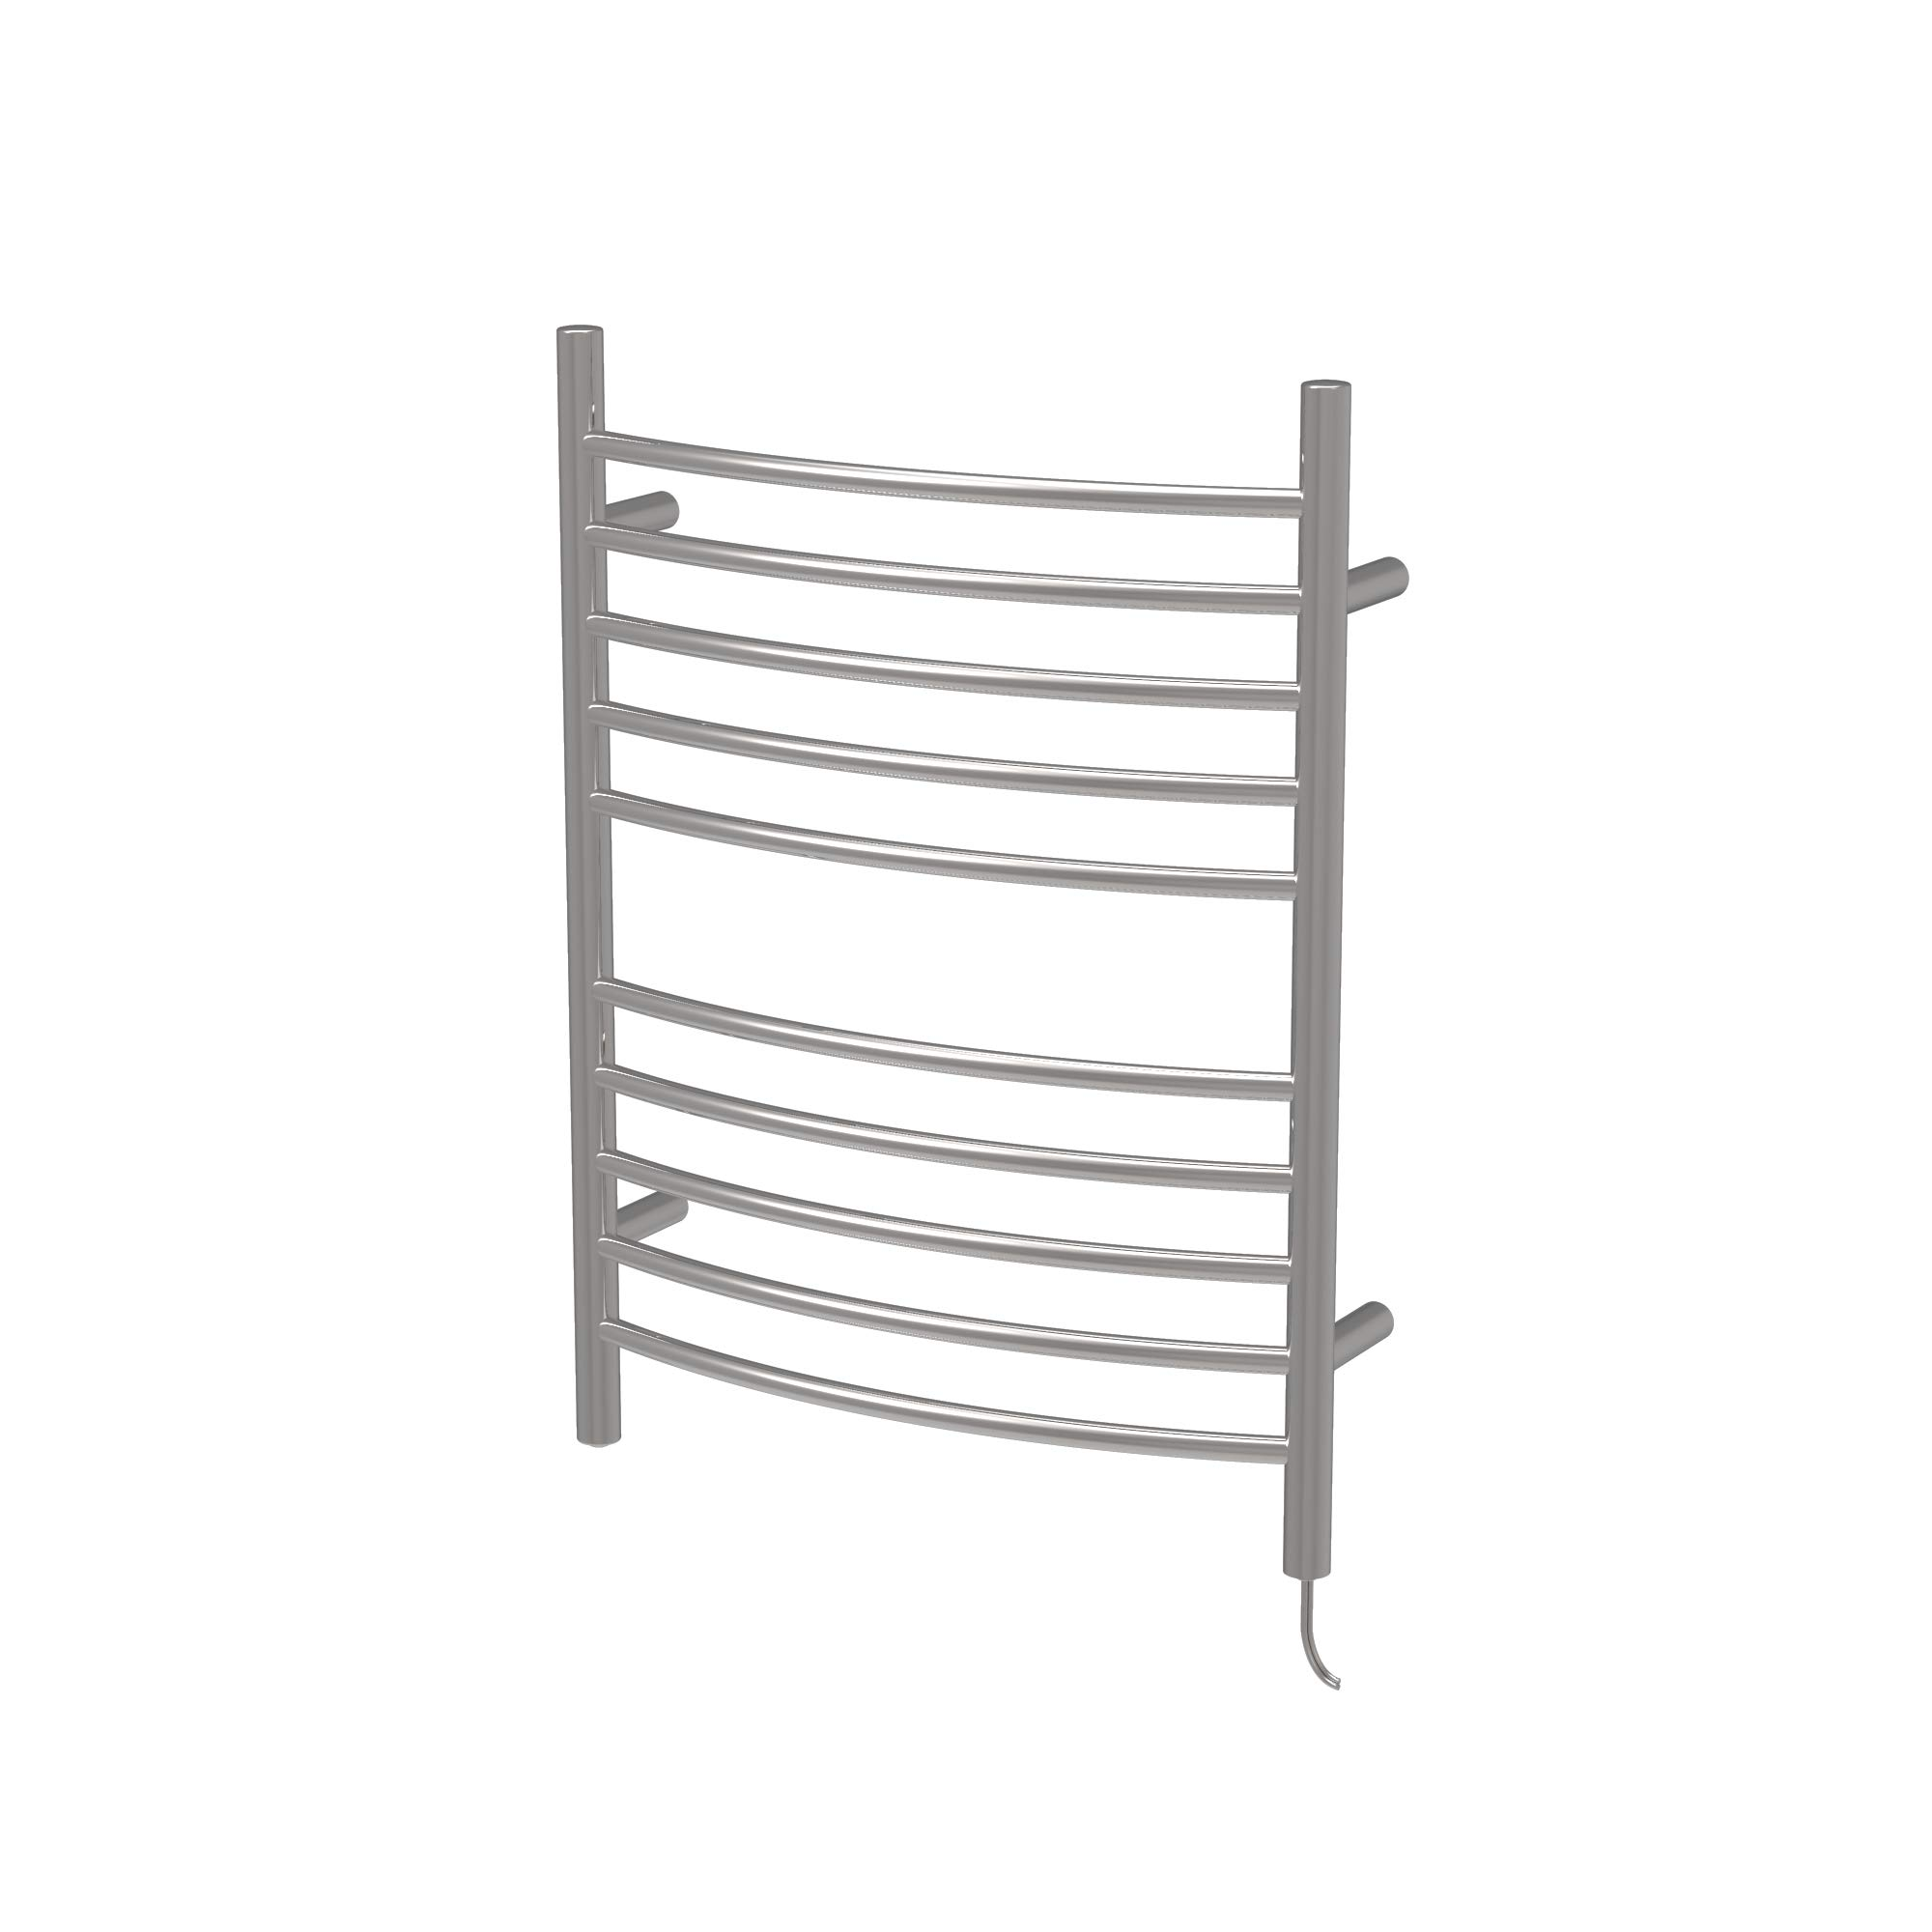 Amba RWP-CP Radiant Plug-In Curved Towel Warmer, Polished by Amba